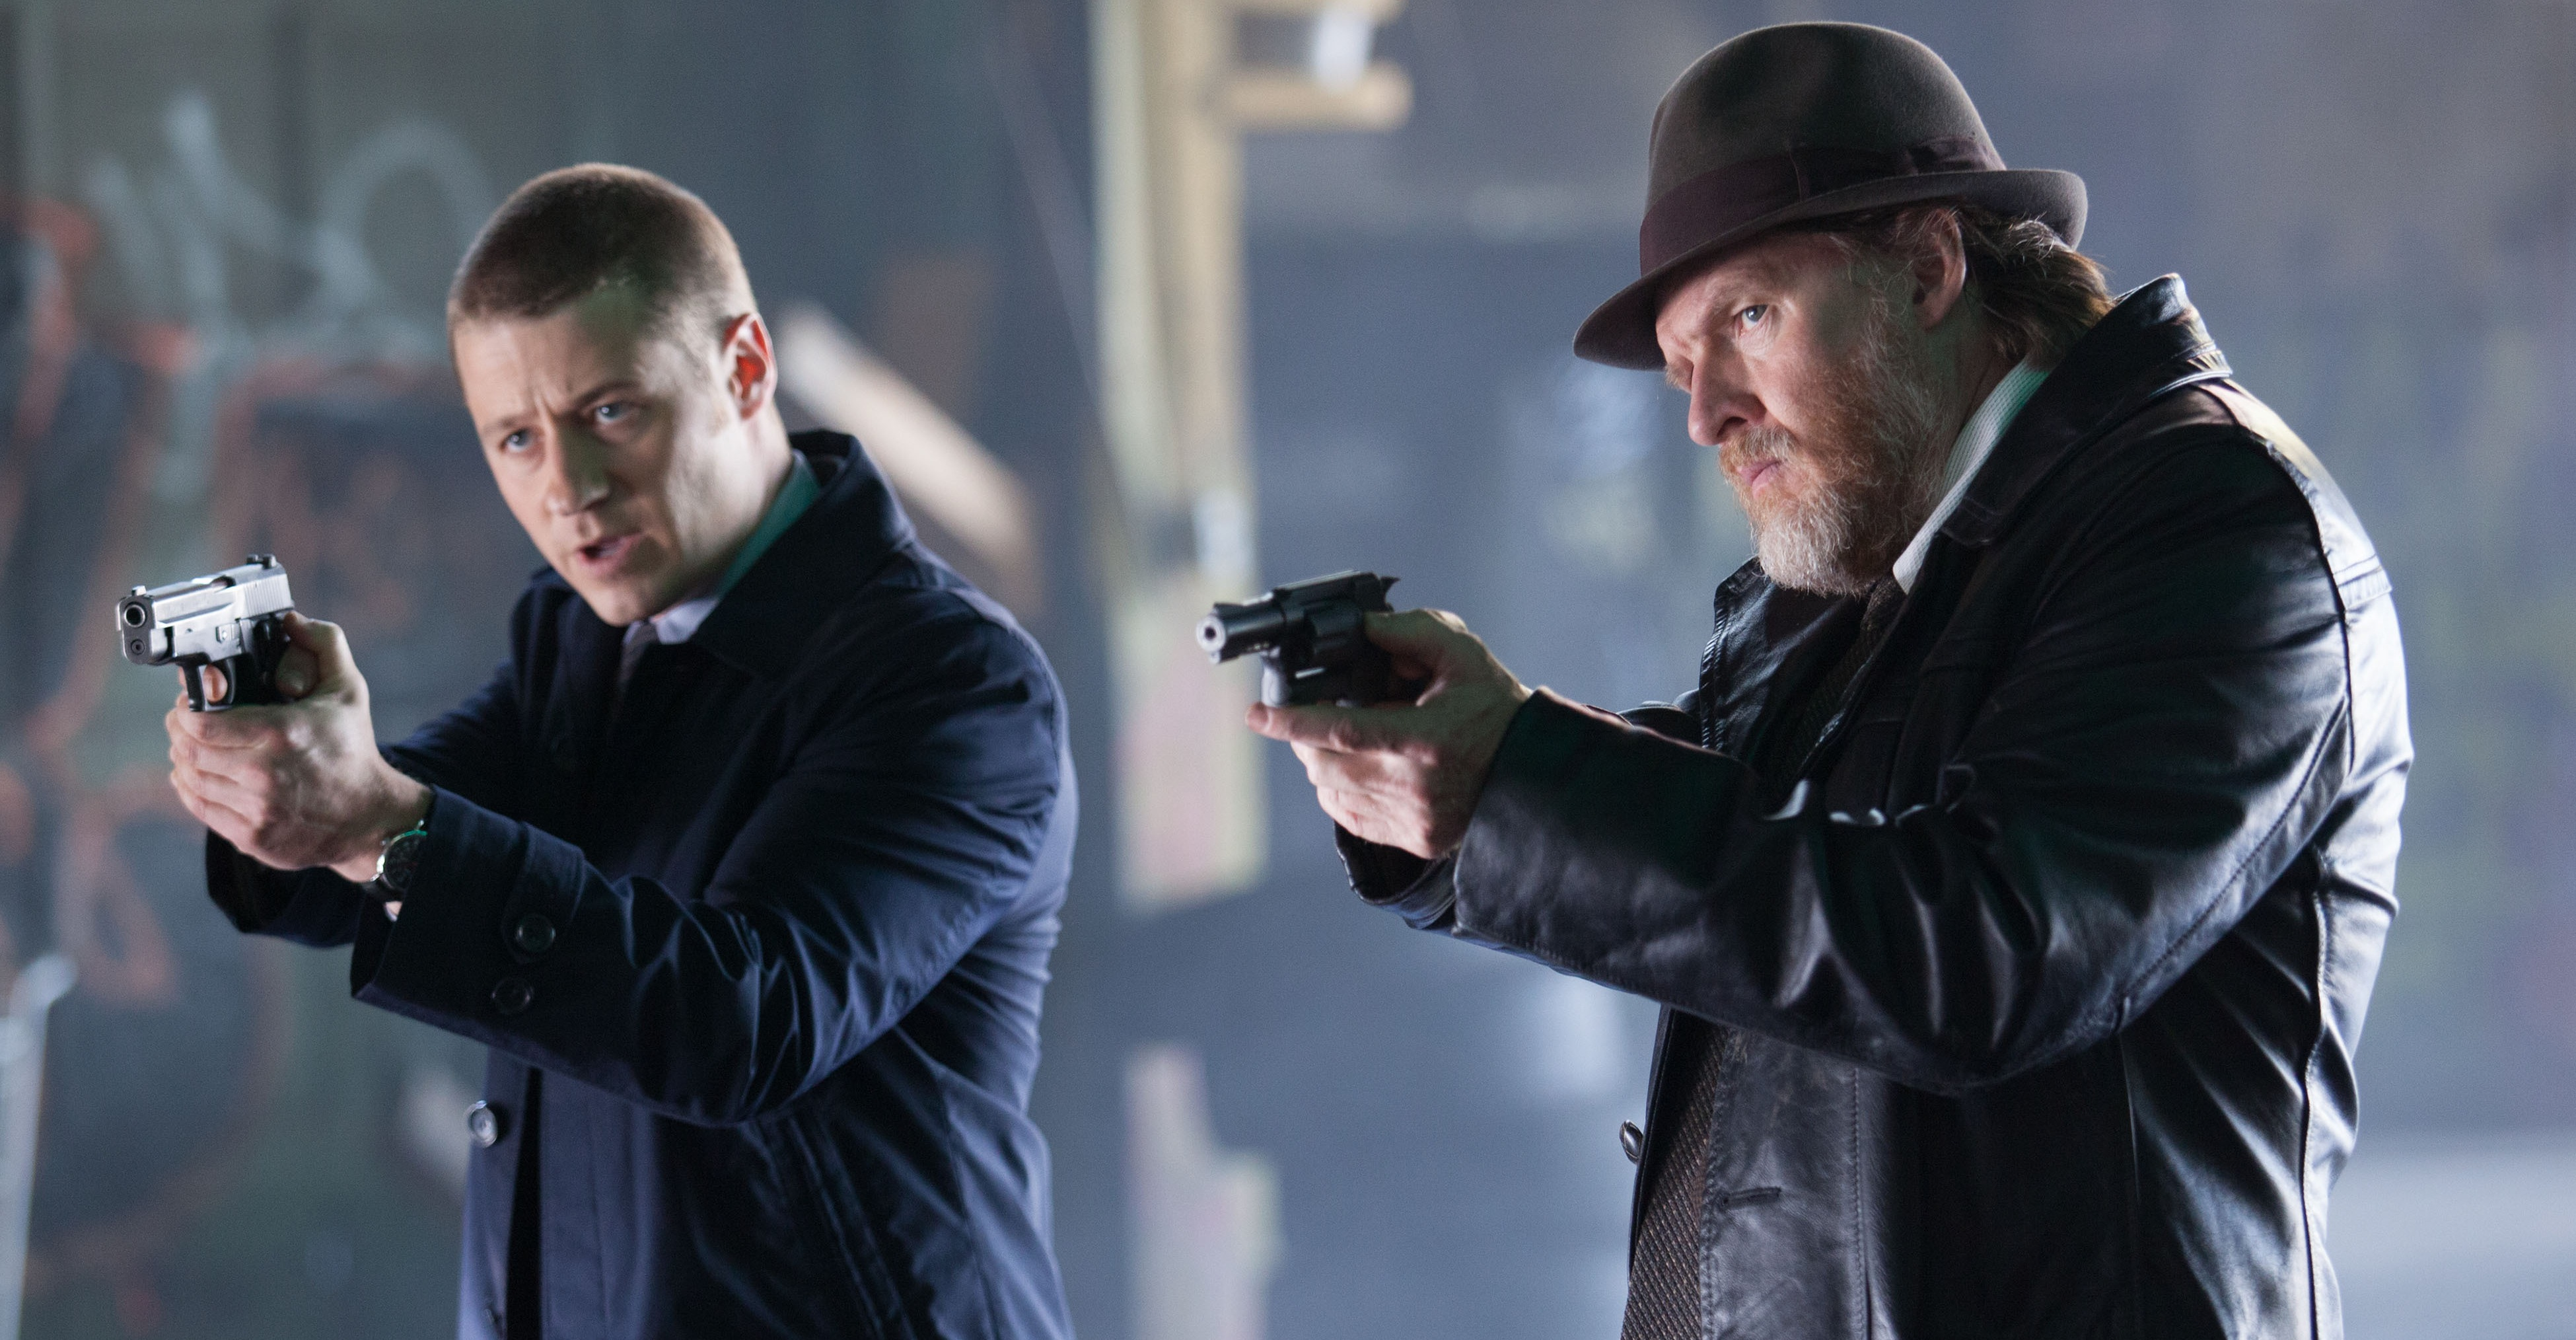 Ben McKenzie and Donal Logue in 'Gotham' S01E05 'Viper'